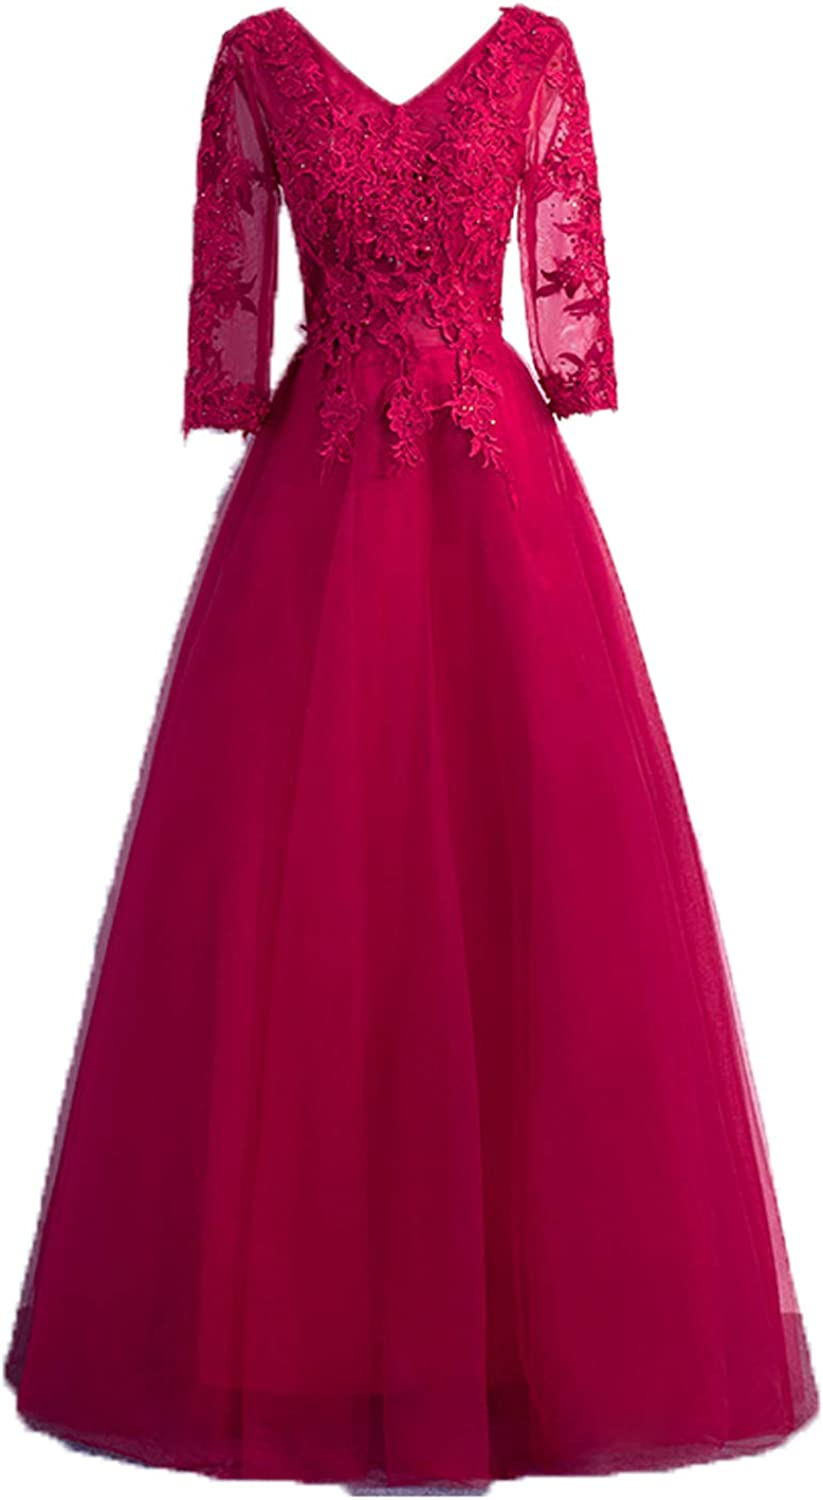 DGMJDFKDRFU Long Evening Dresses for Women with Sleeves Formal Wedding LF002